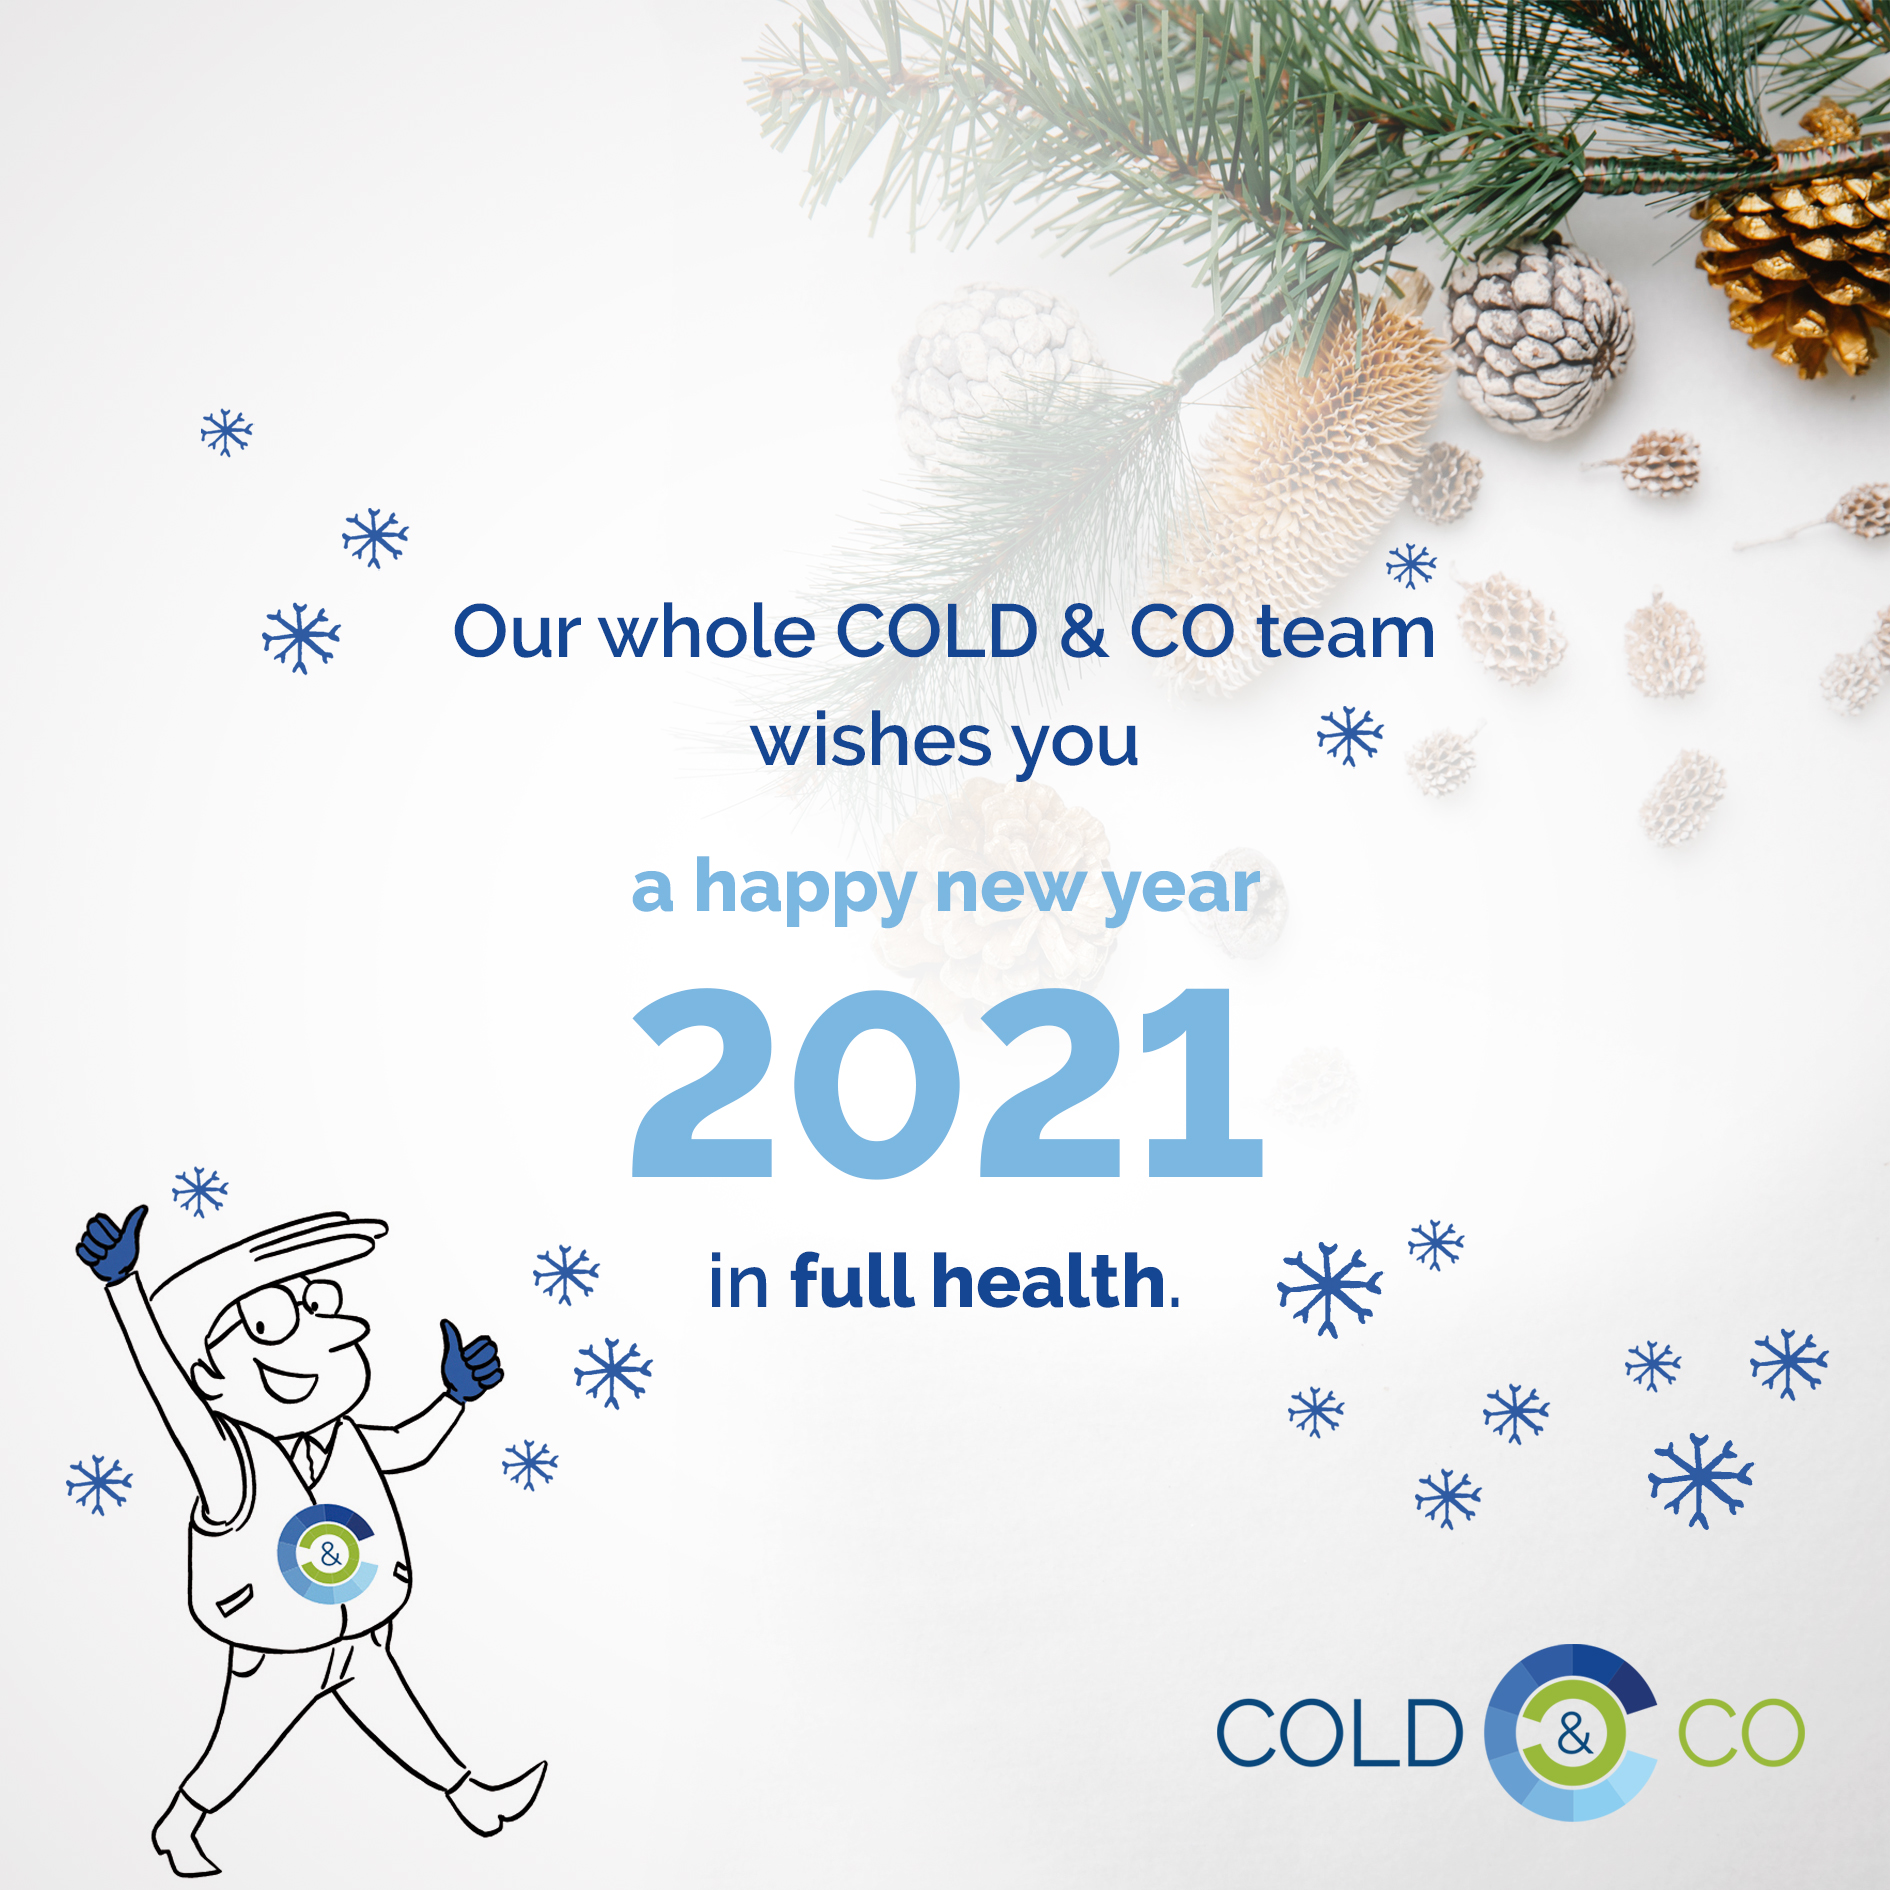 COLD & CO at the service of the cold chain for temperature-controlled products wishes you best wishes for 2021